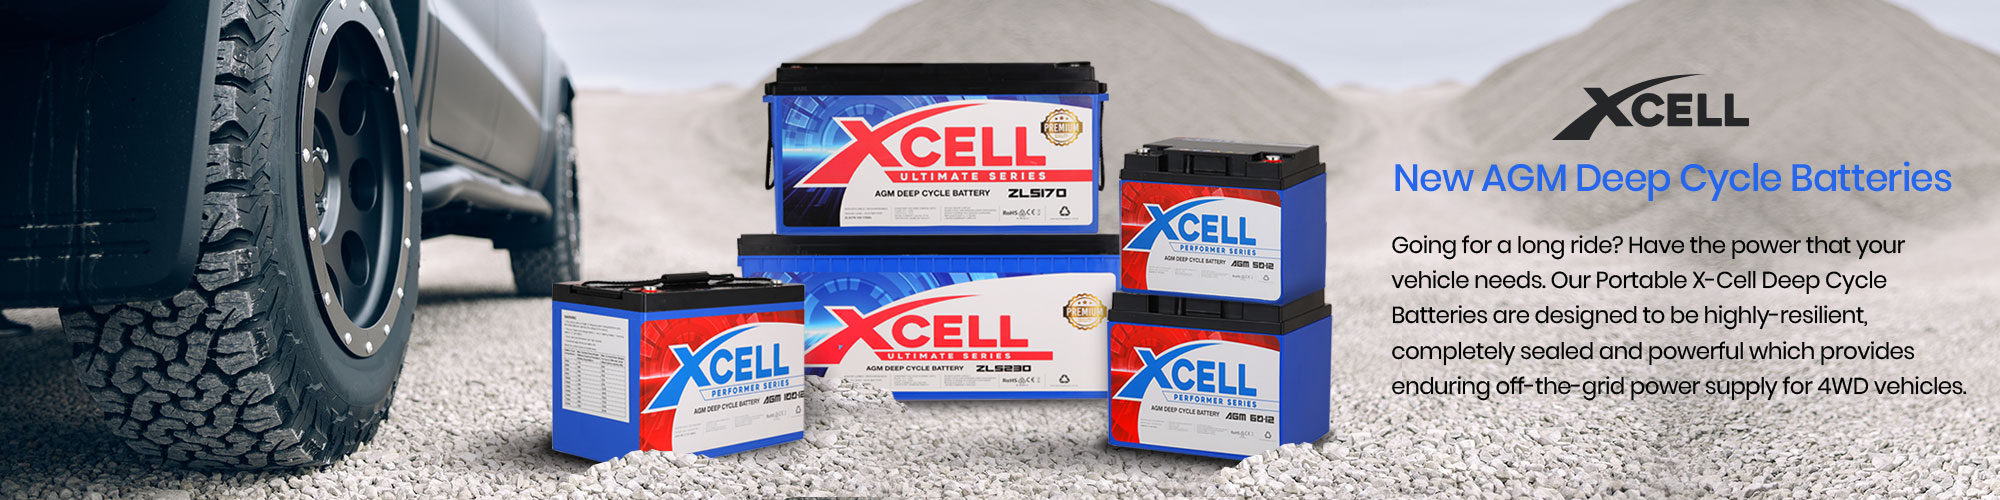 X-Cell AGM Deep Cycle Batteries